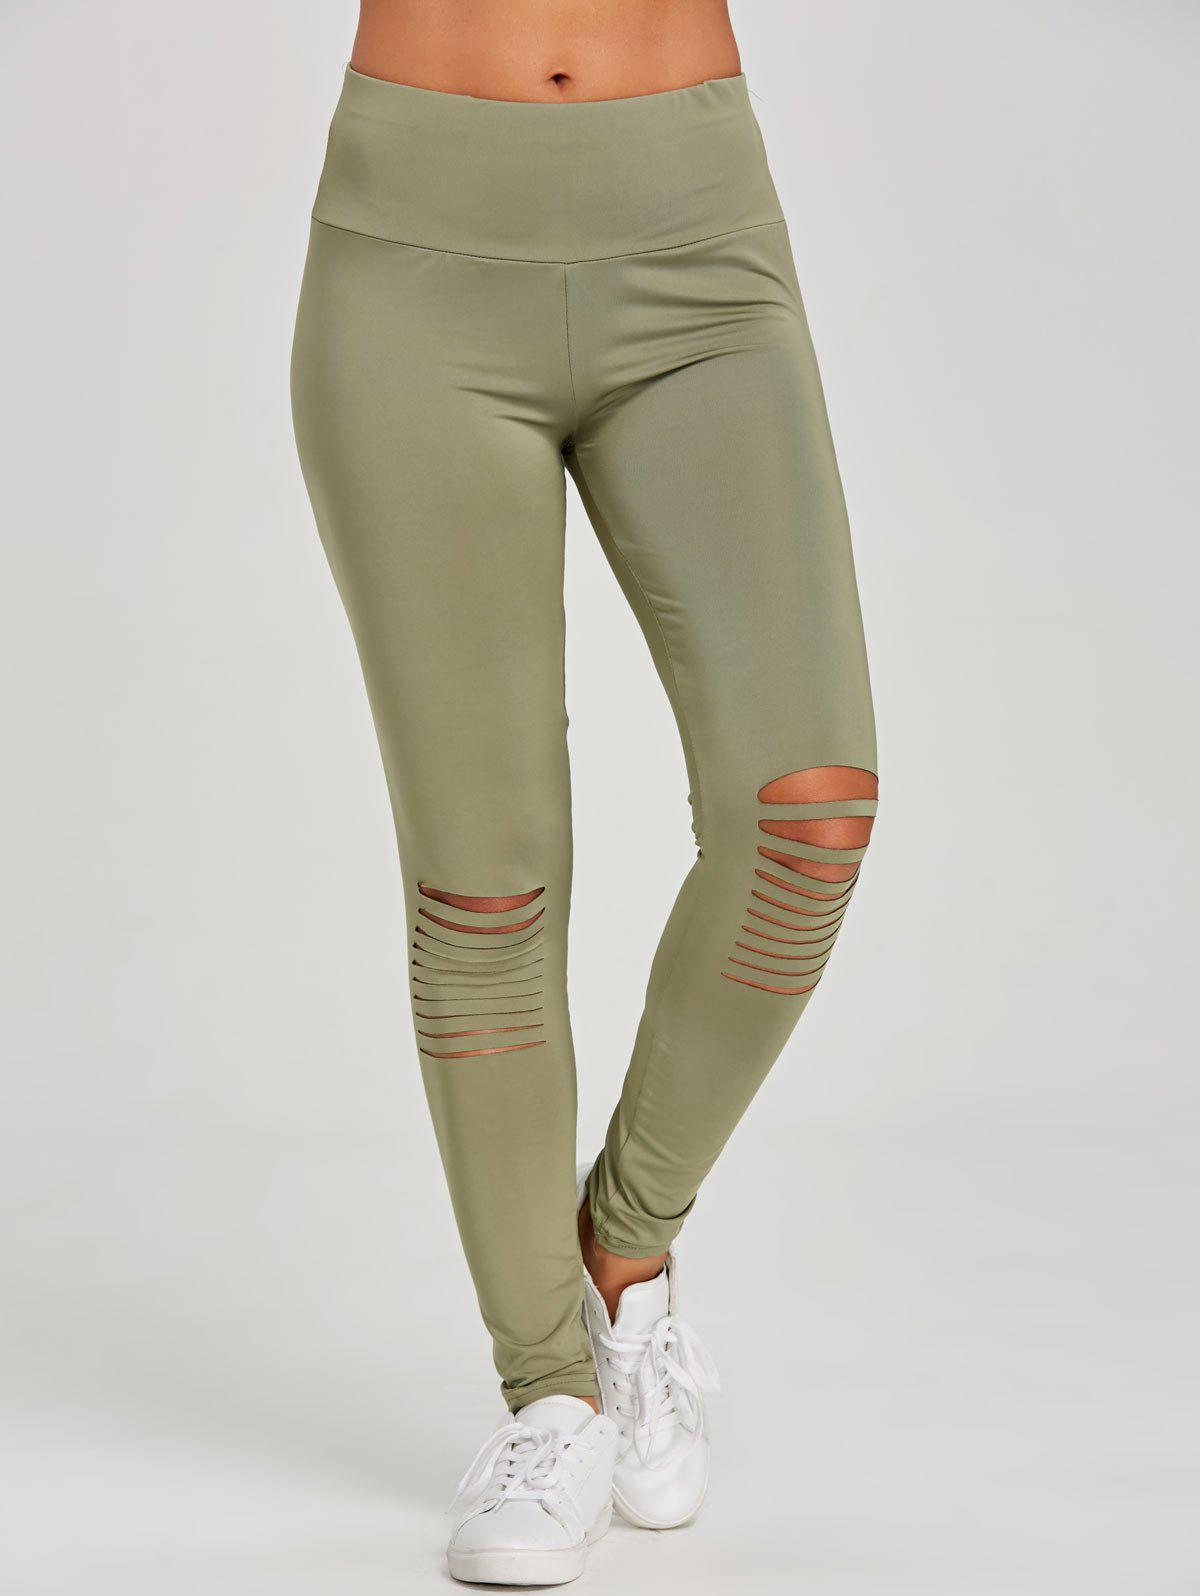 Hot Distressed Skinny Workout Leggings